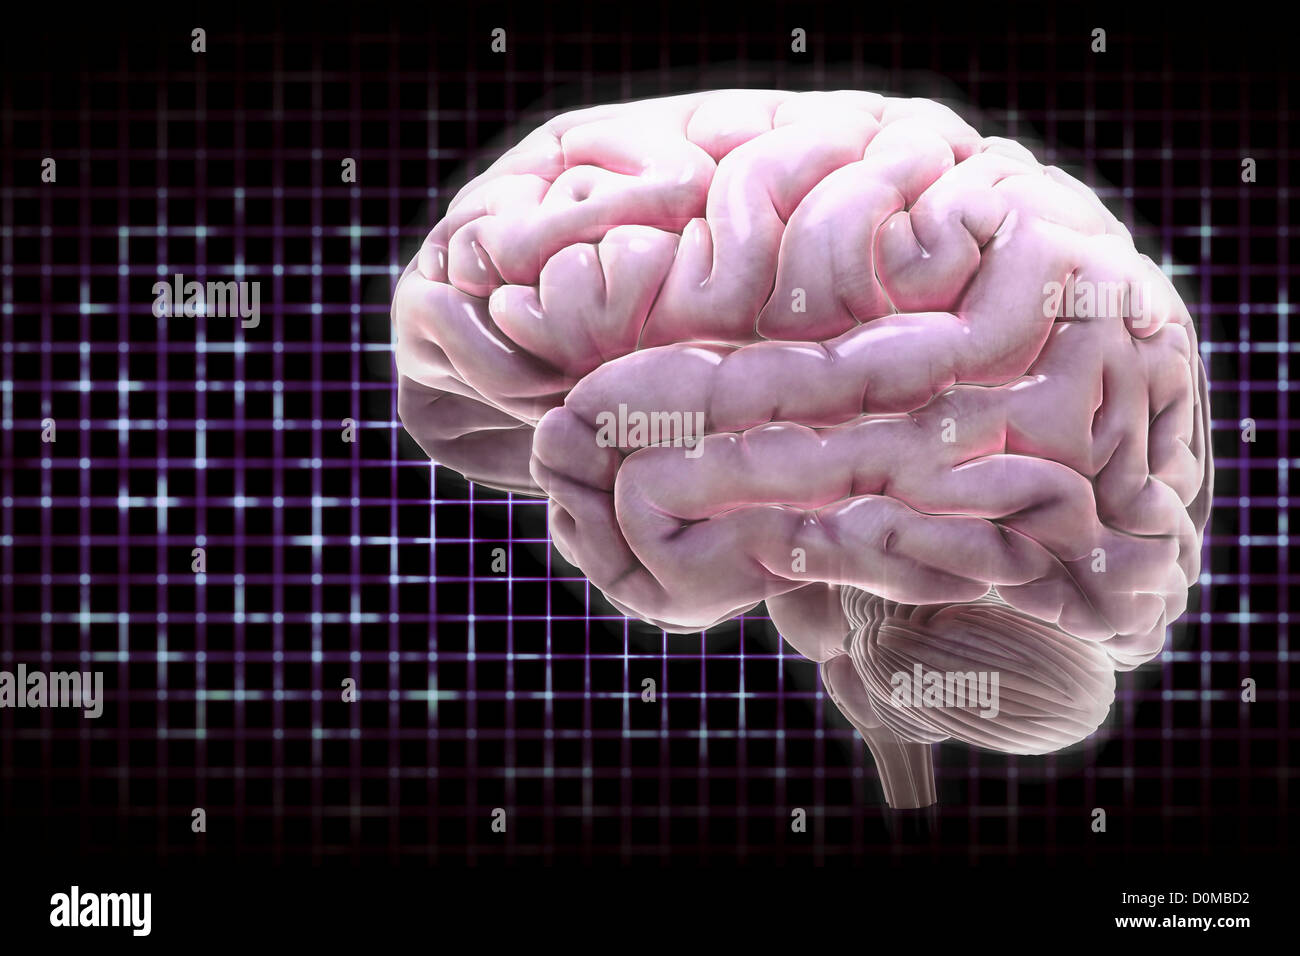 An illuminated, digital diagram of a human brain. - Stock Image